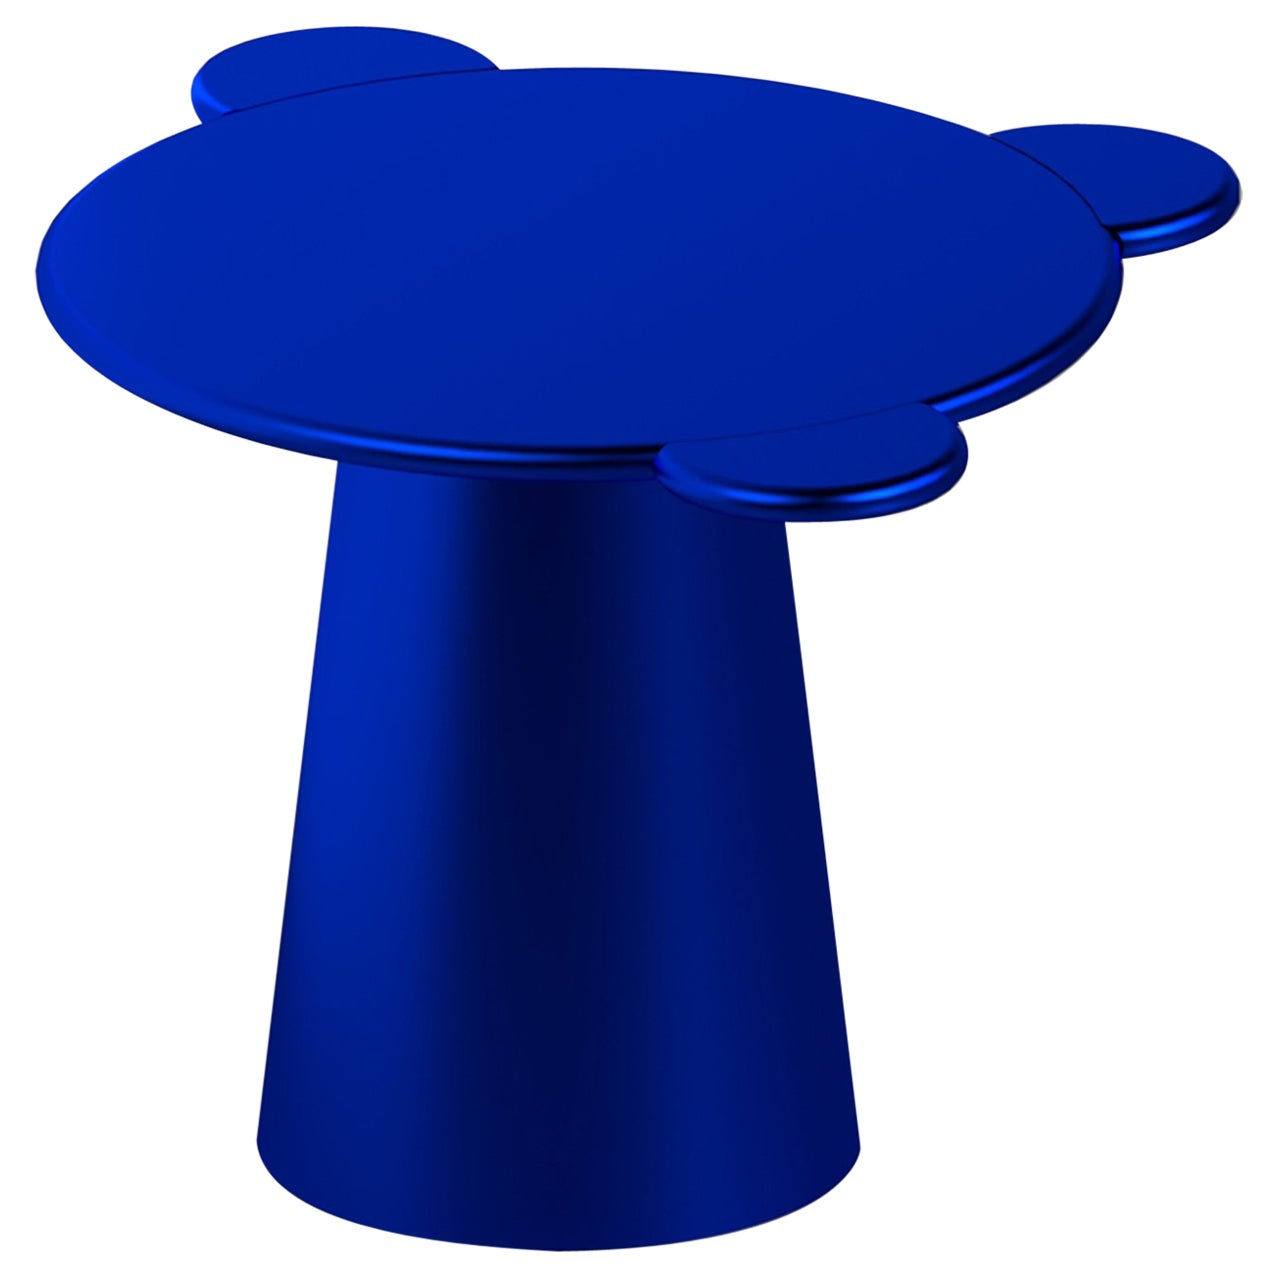 Contemporary Coffee Table Blue Donald Wood by Chapel Petrassi